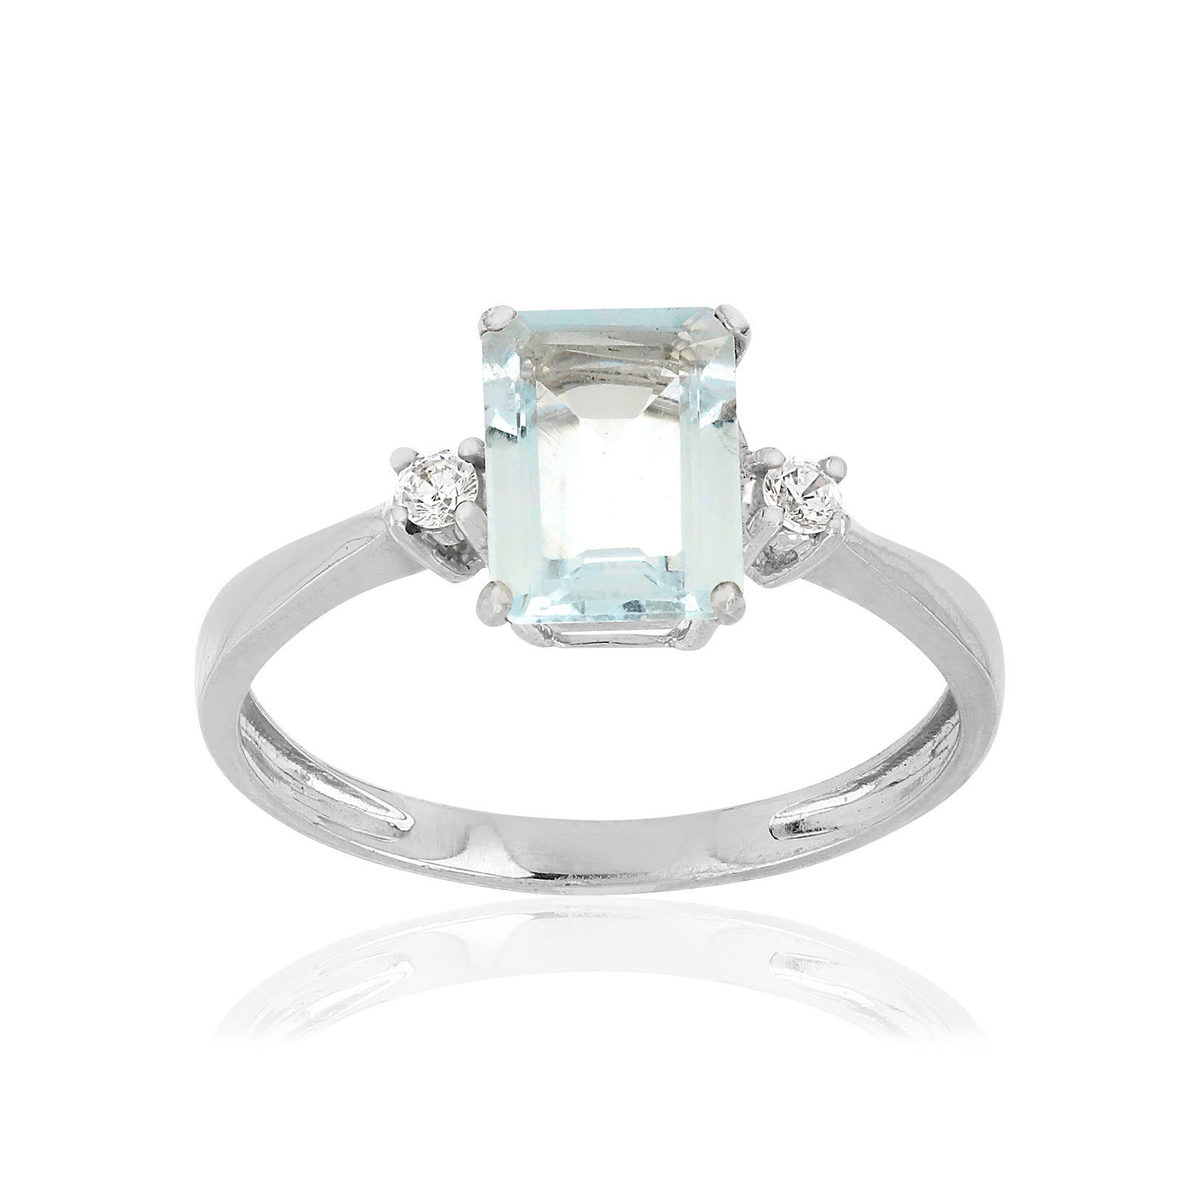 Bague MATY Or 375 blanc Aigue marine Zirconias - vue 1